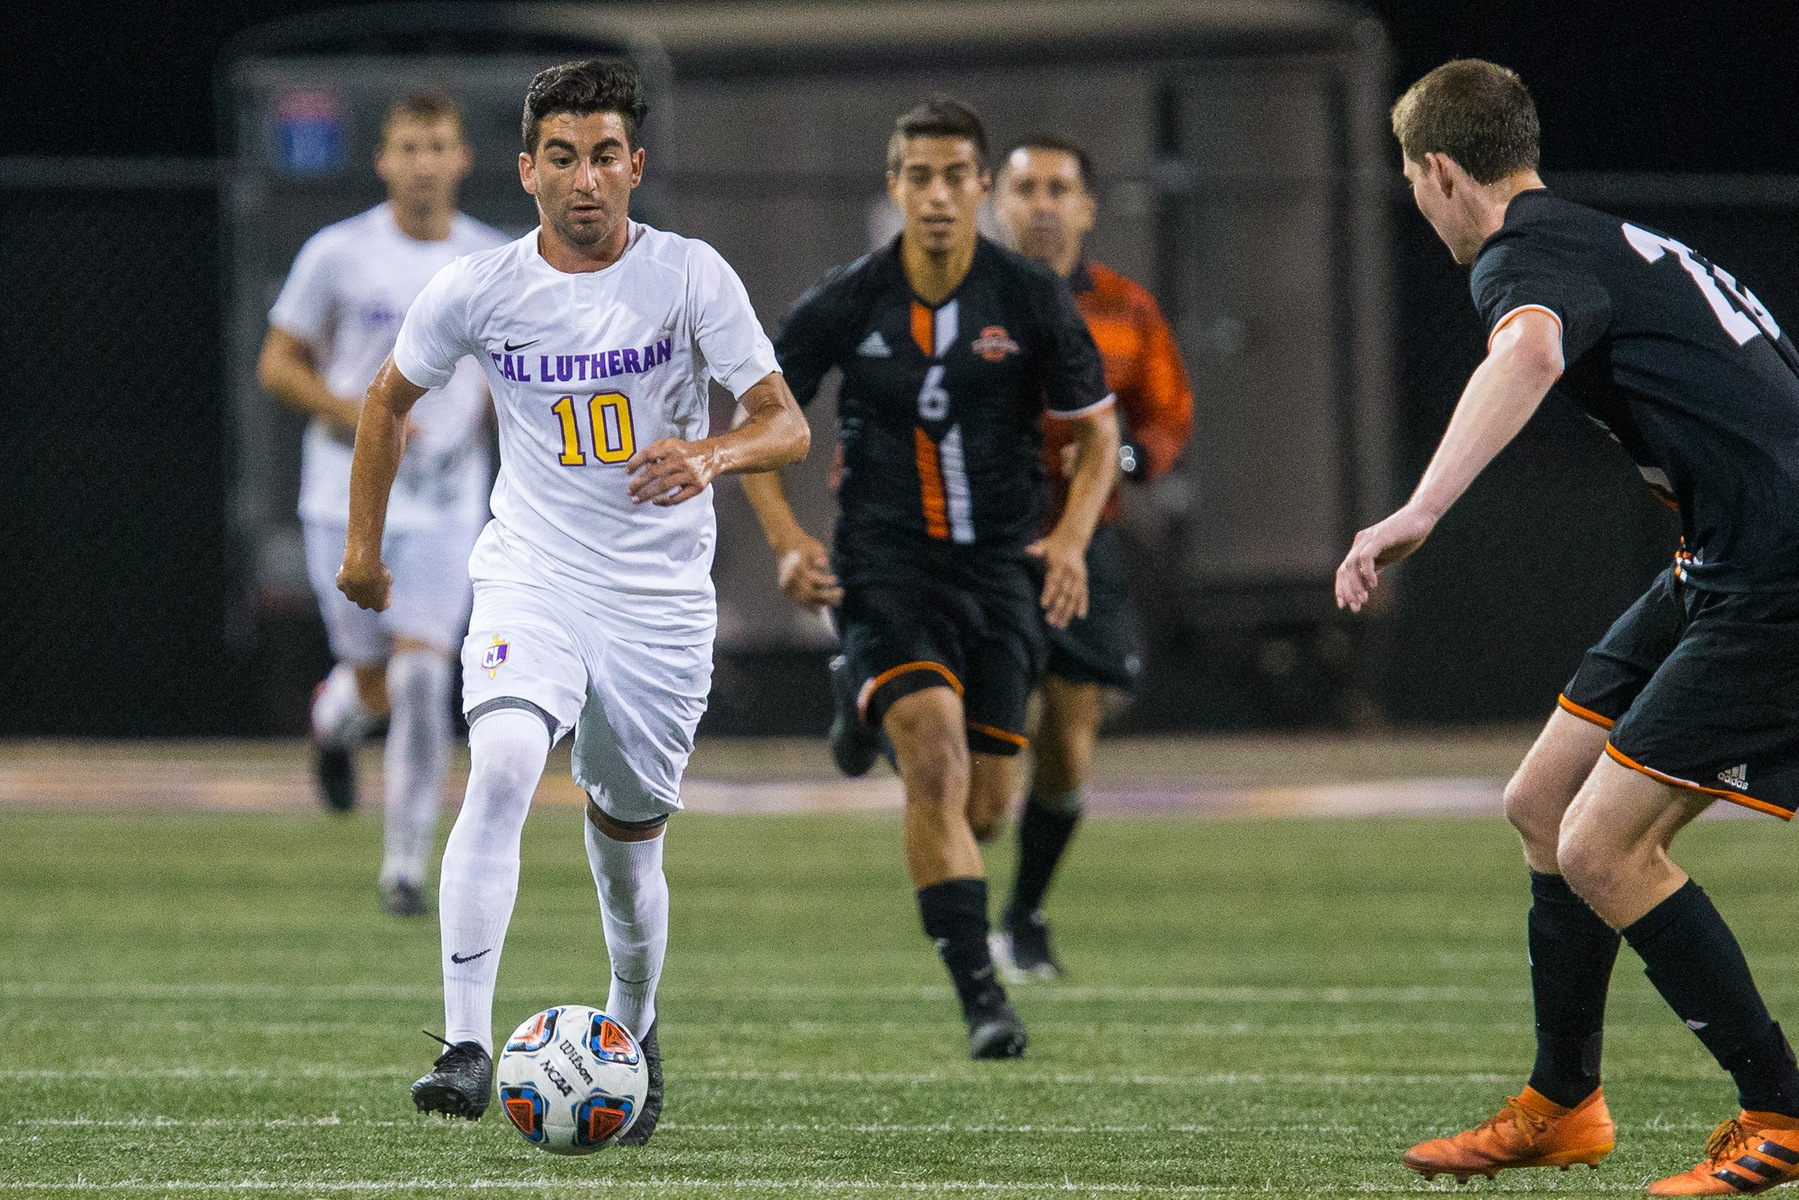 Kingsmen Fall to No. 24 Stags